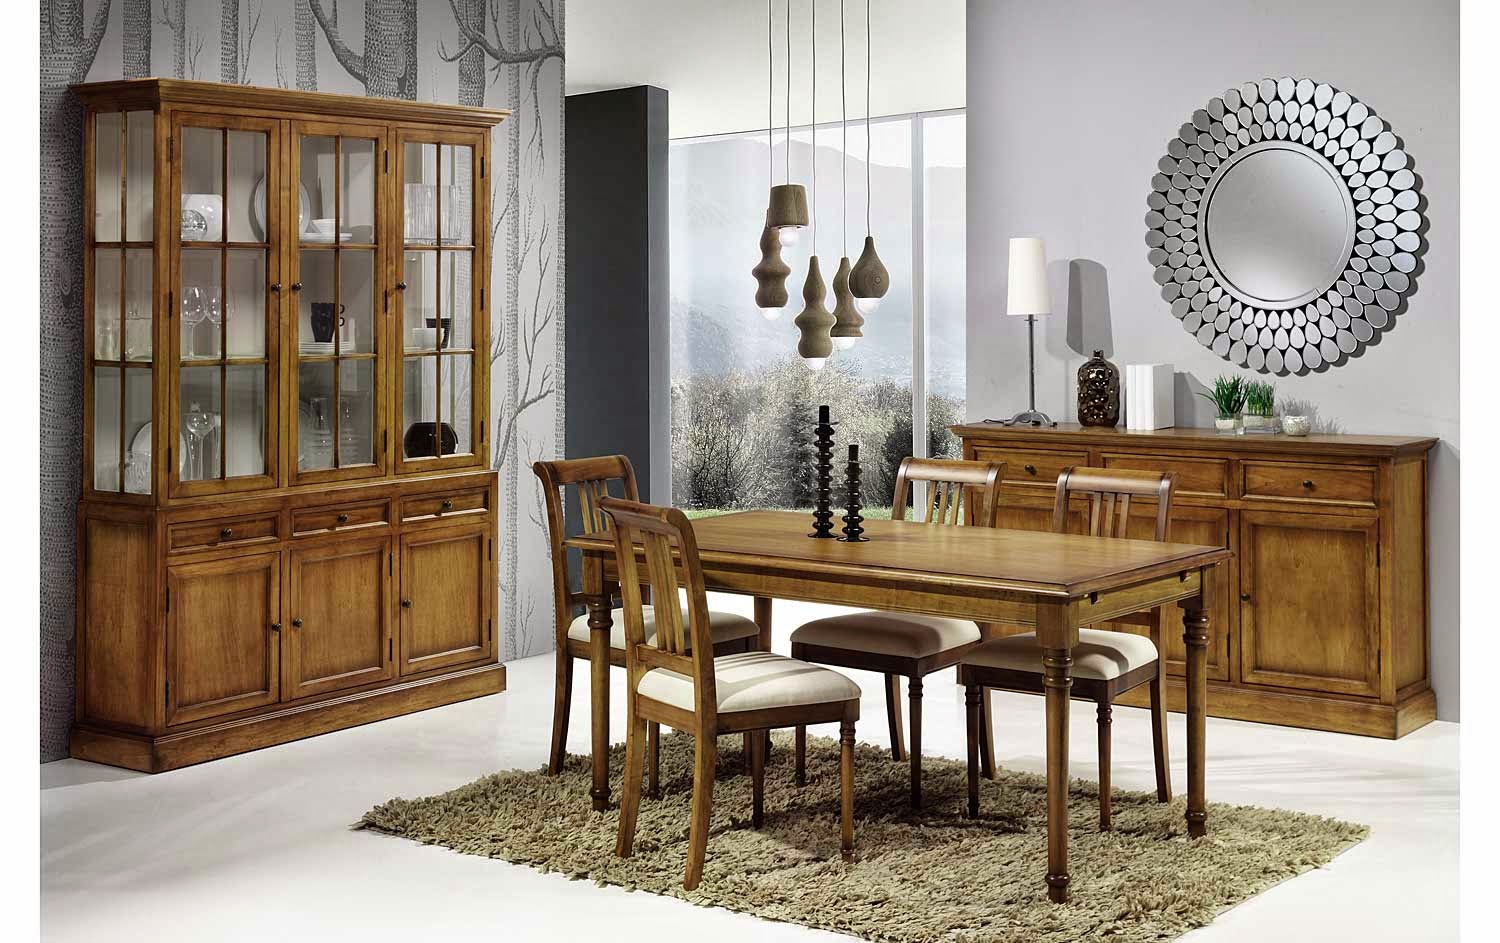 Cinco comedores con vitrinas for Decorar vitrina de comedor